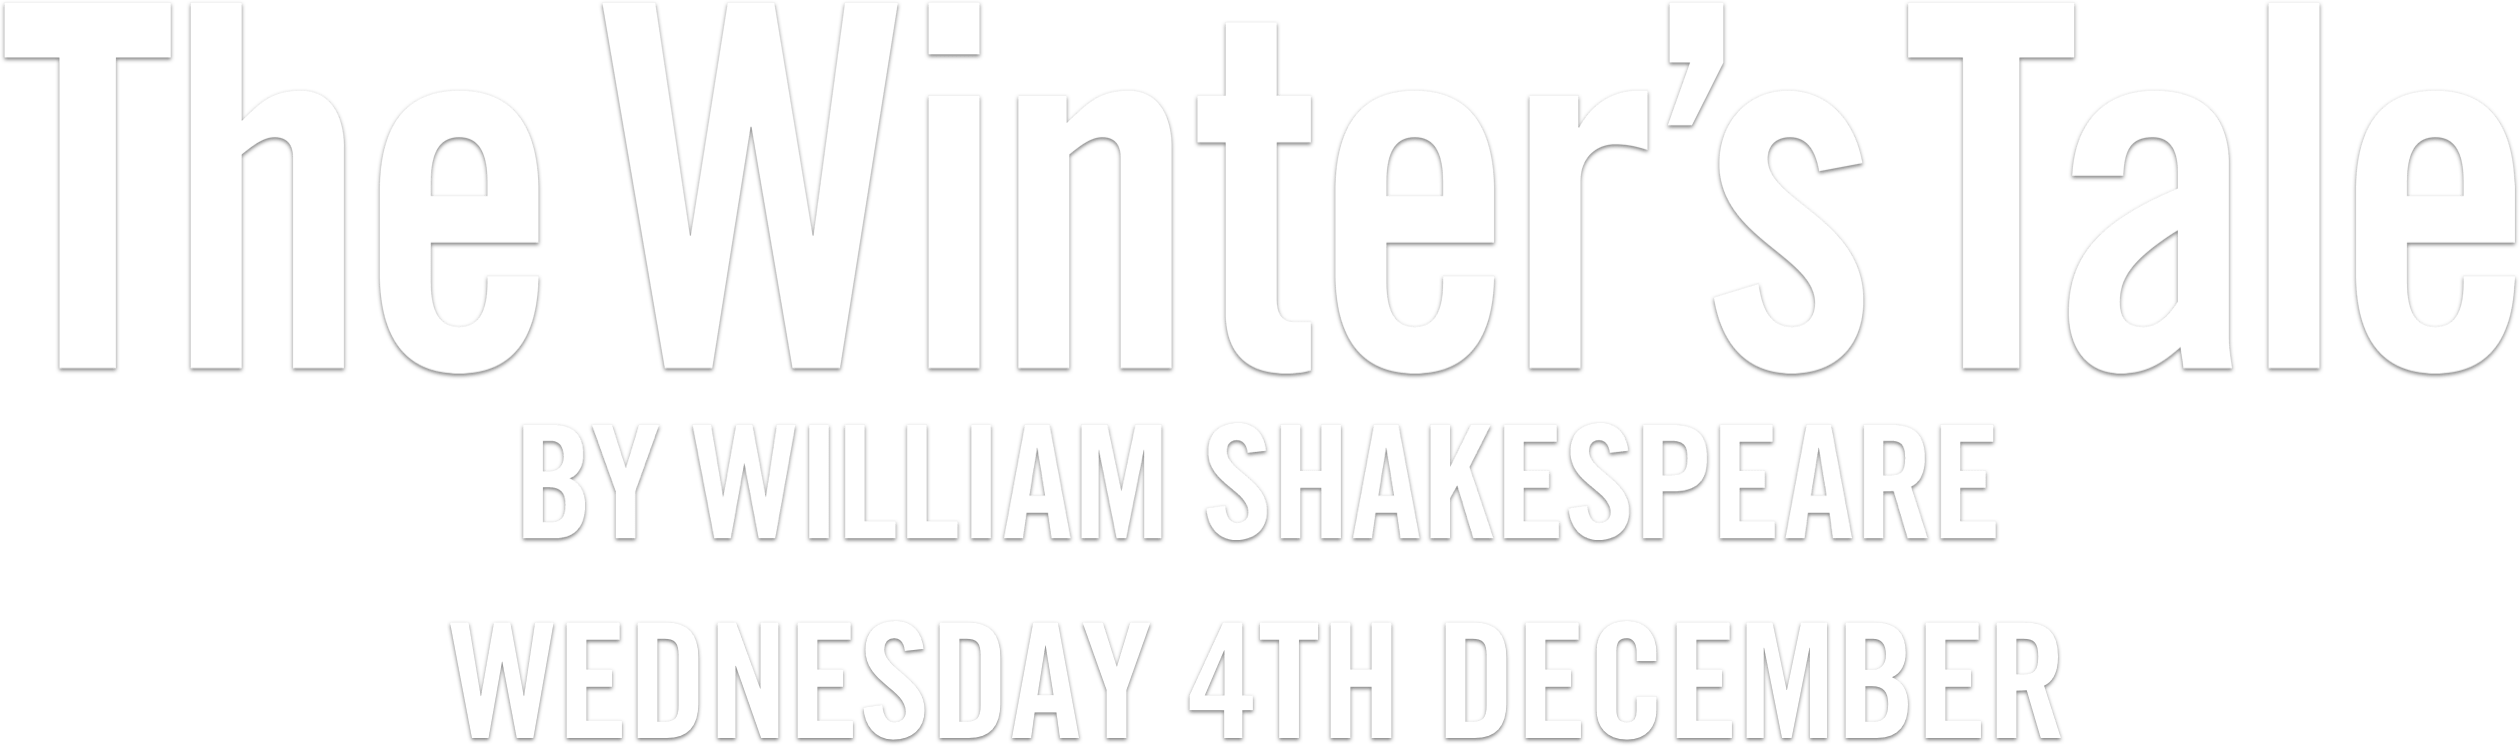 Branagh Theatre Live: The Winter's Tale : %$SYNOPSIS% | Trafalgar Releasing